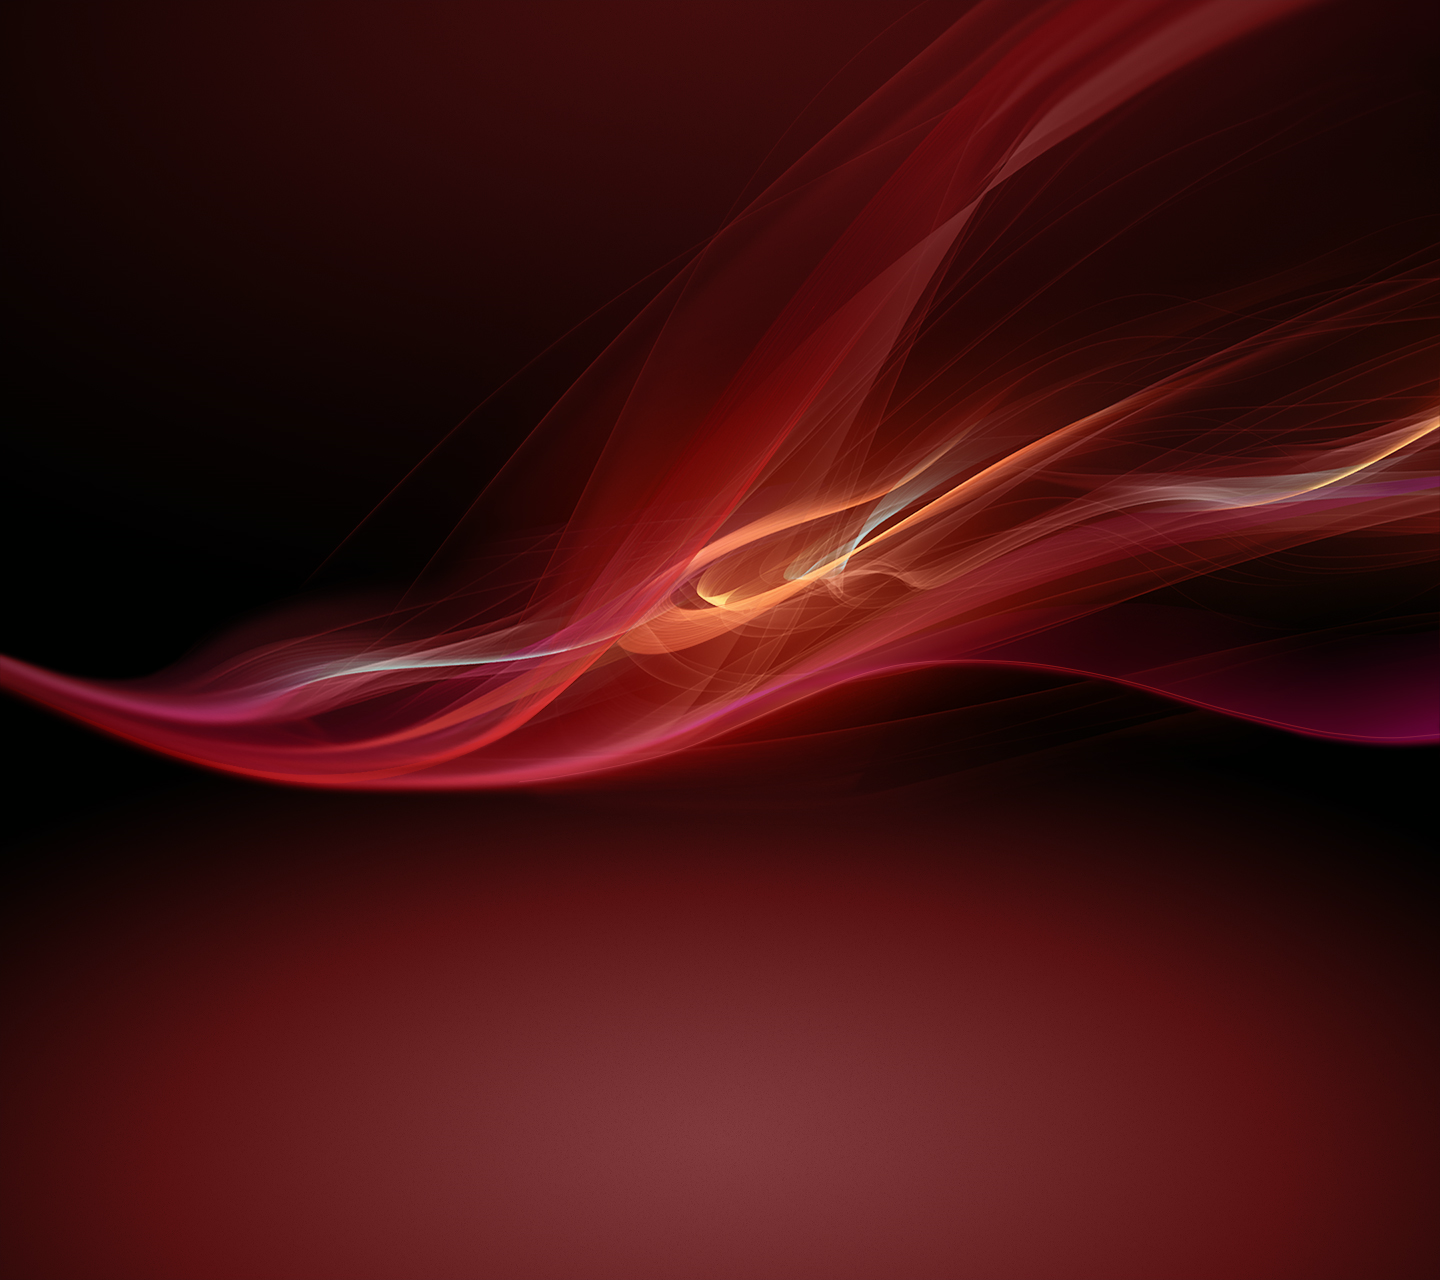 Red Xperia Z Wallpaper